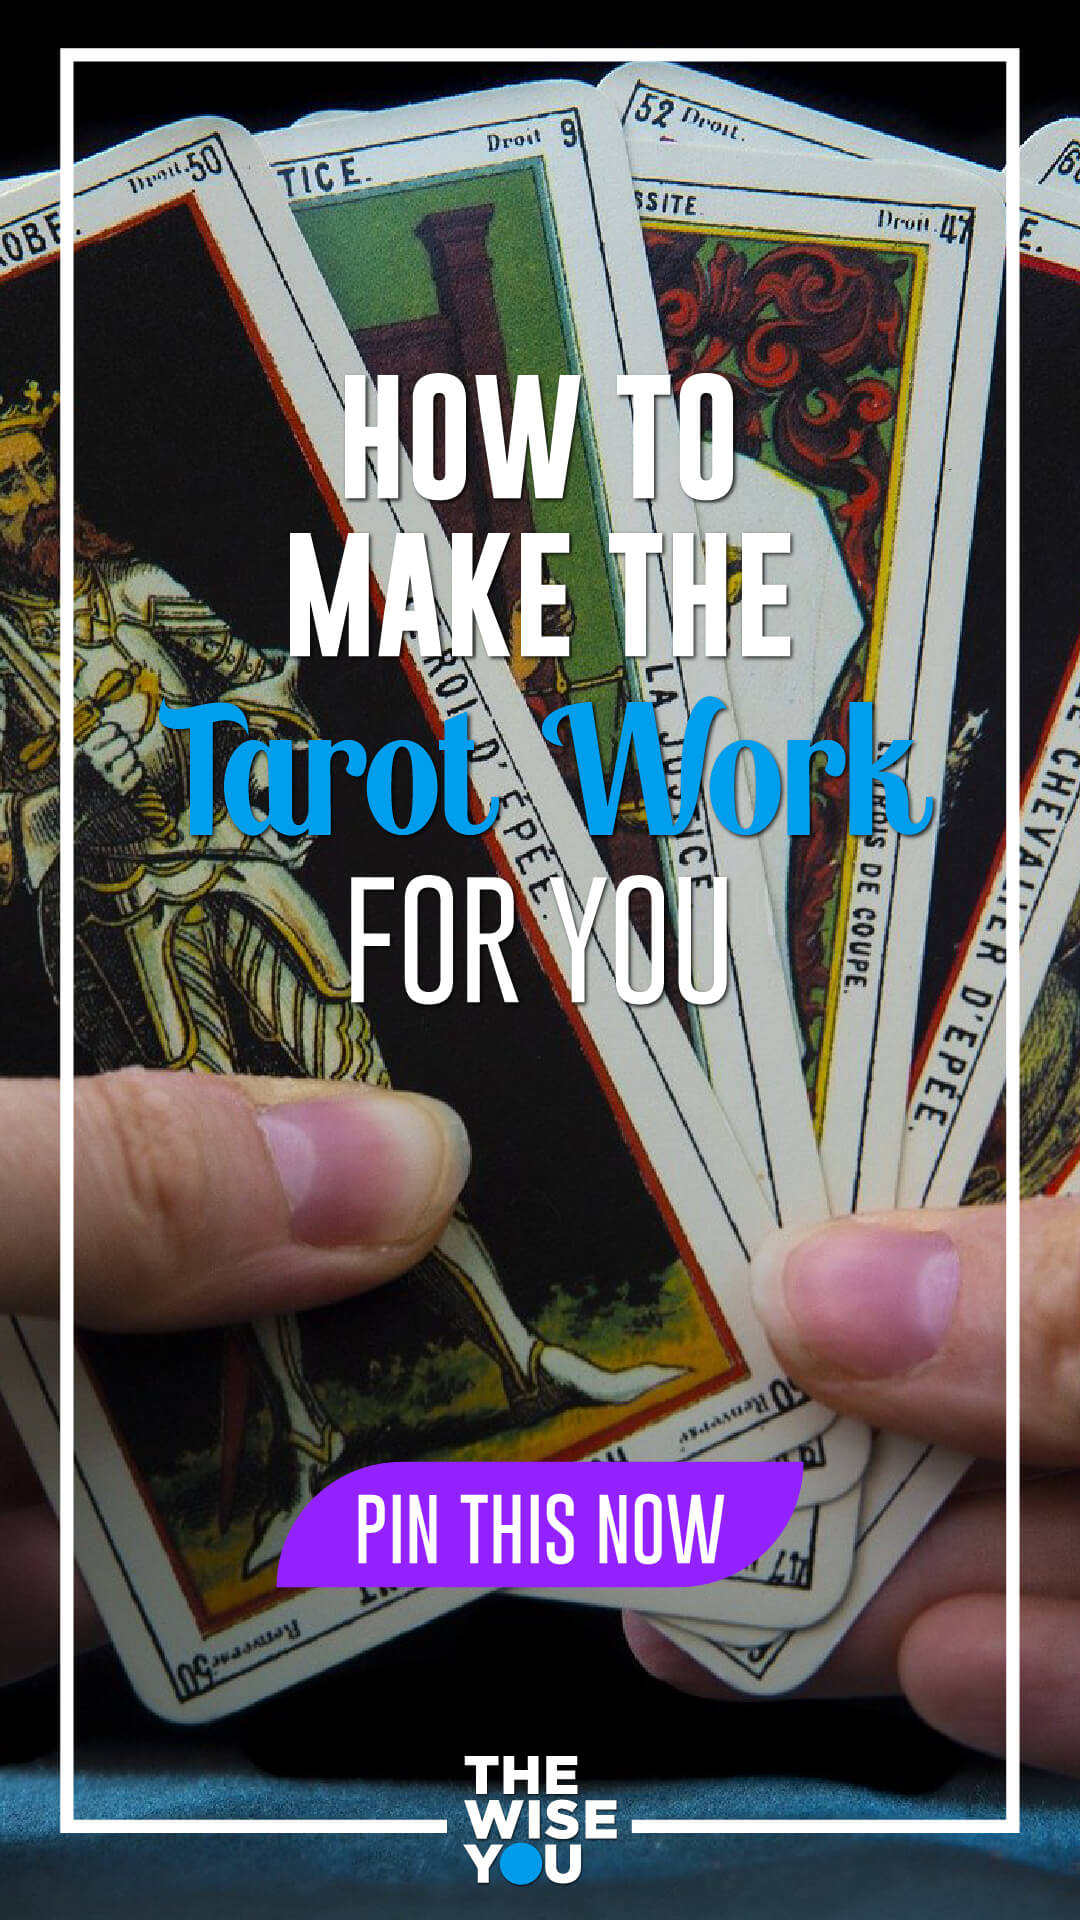 Tarot Work For You